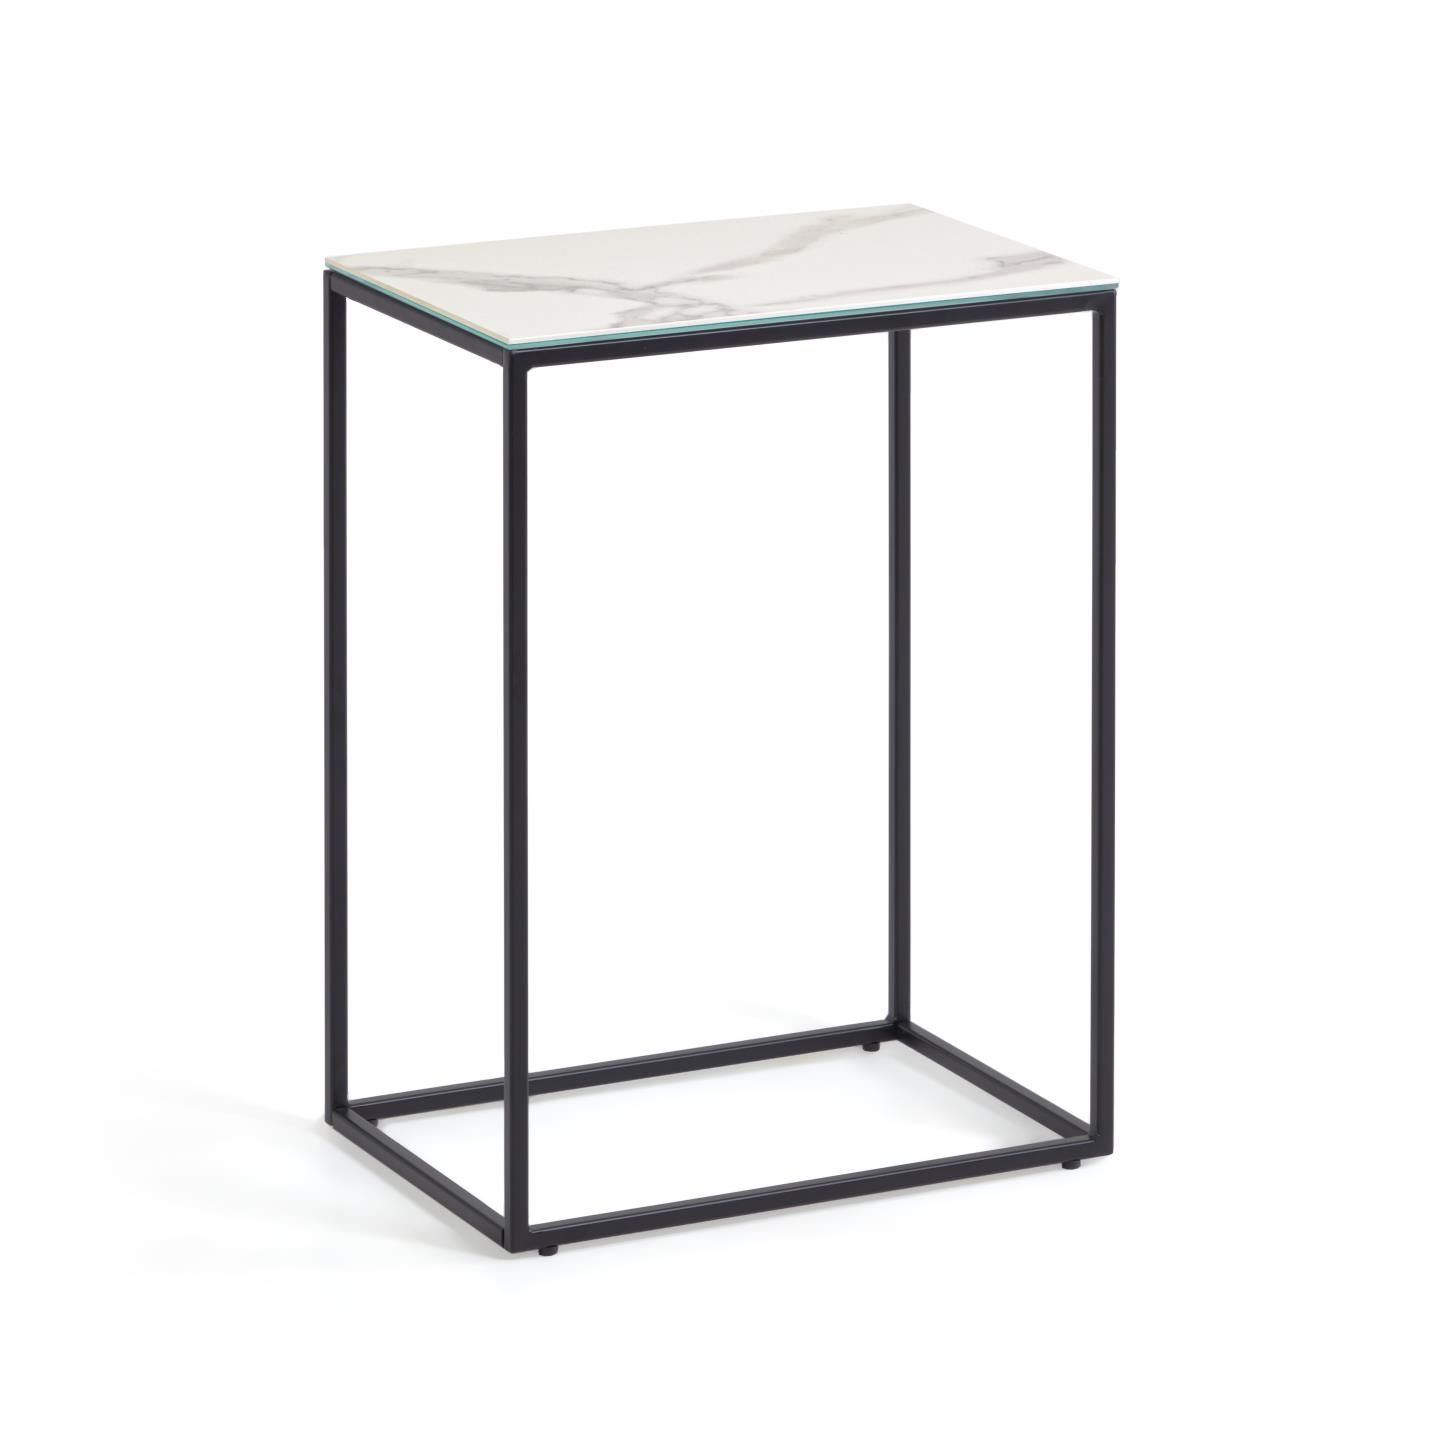 Kave home - table d'appoint rewena porcelain...